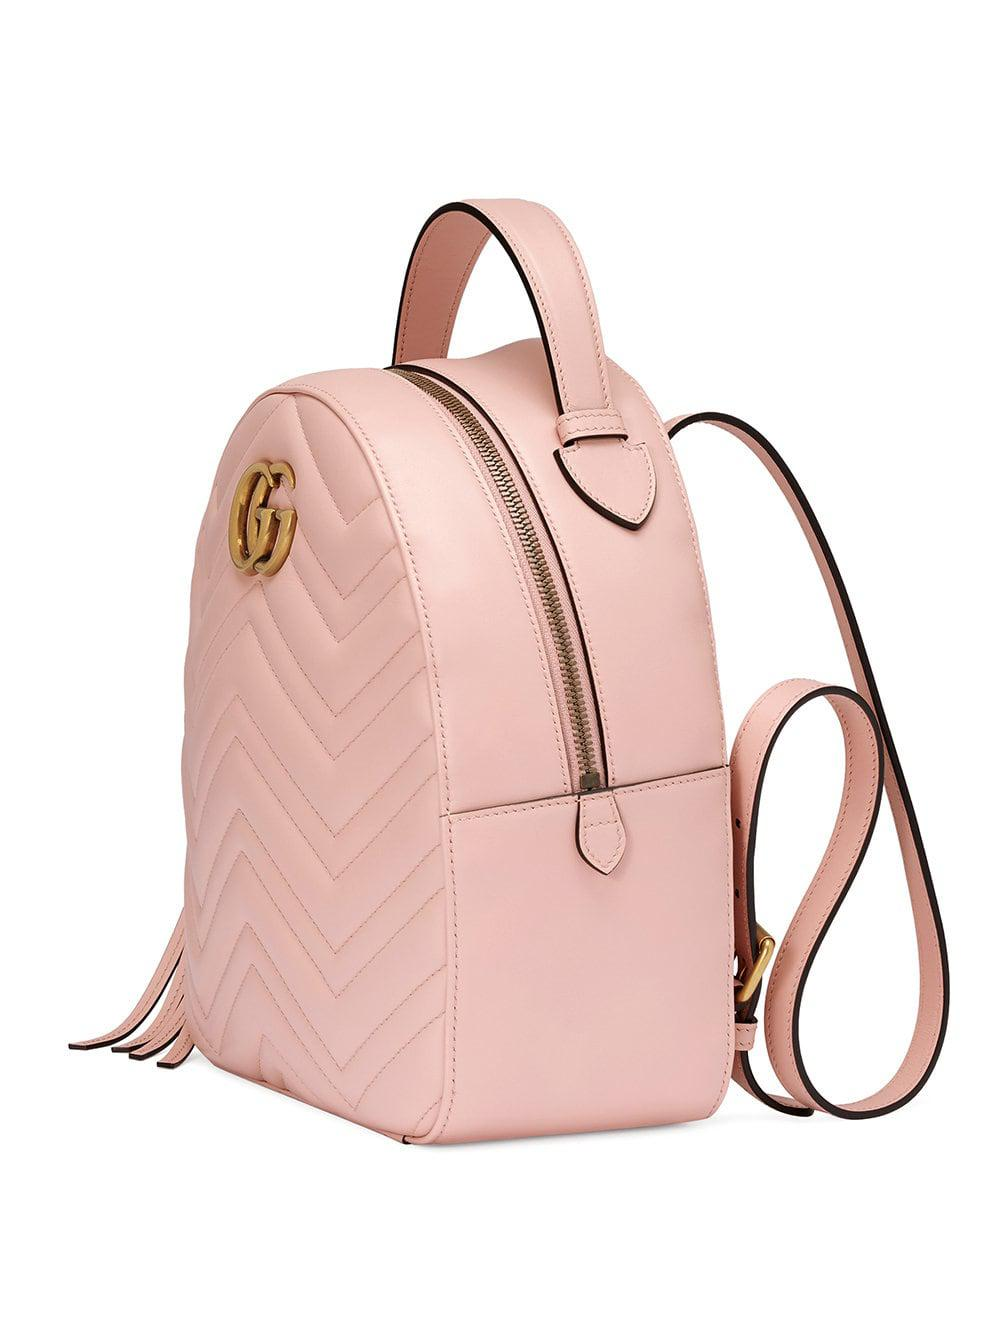 fb98691a938456 Gucci - Pink Marmont Quilted Leather Backpack - Lyst. View fullscreen